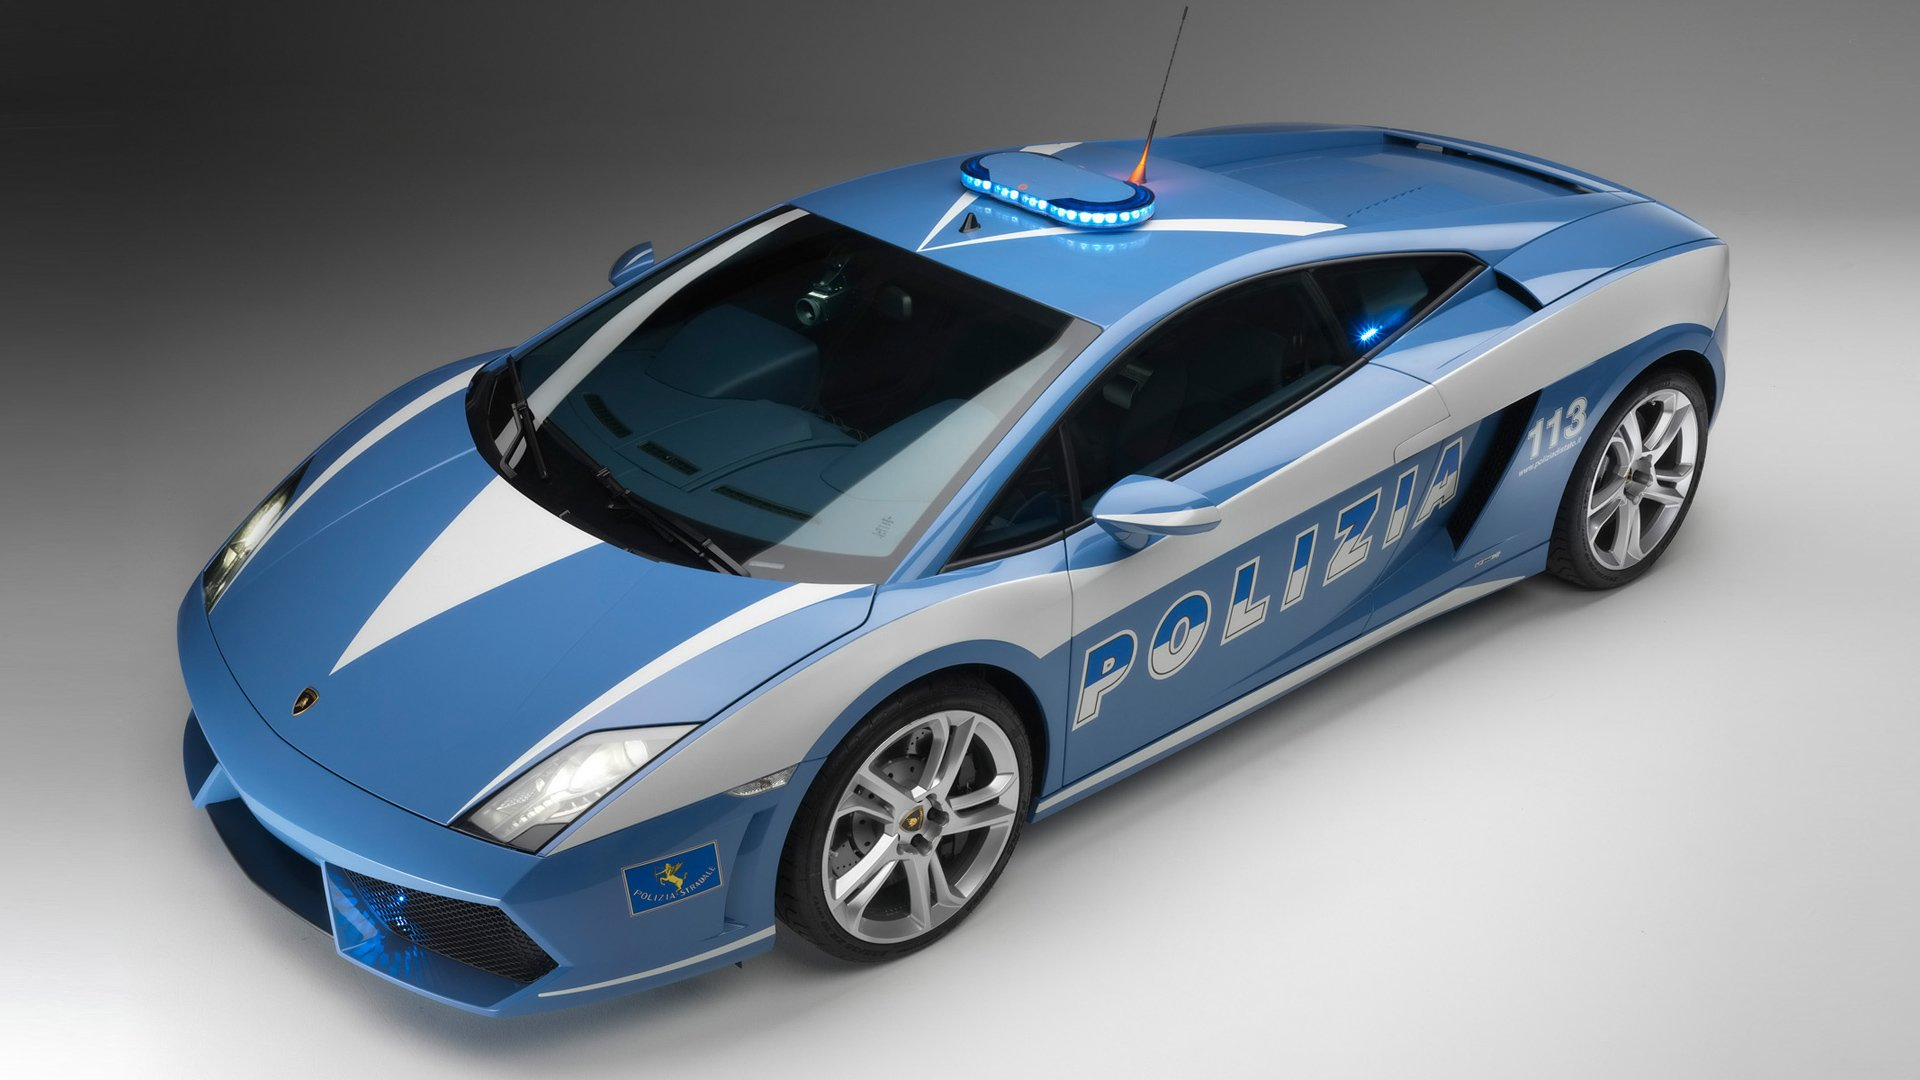 Police Car Wallpaper, wallpaper, Police Car Wallpaper hd wallpaper ...